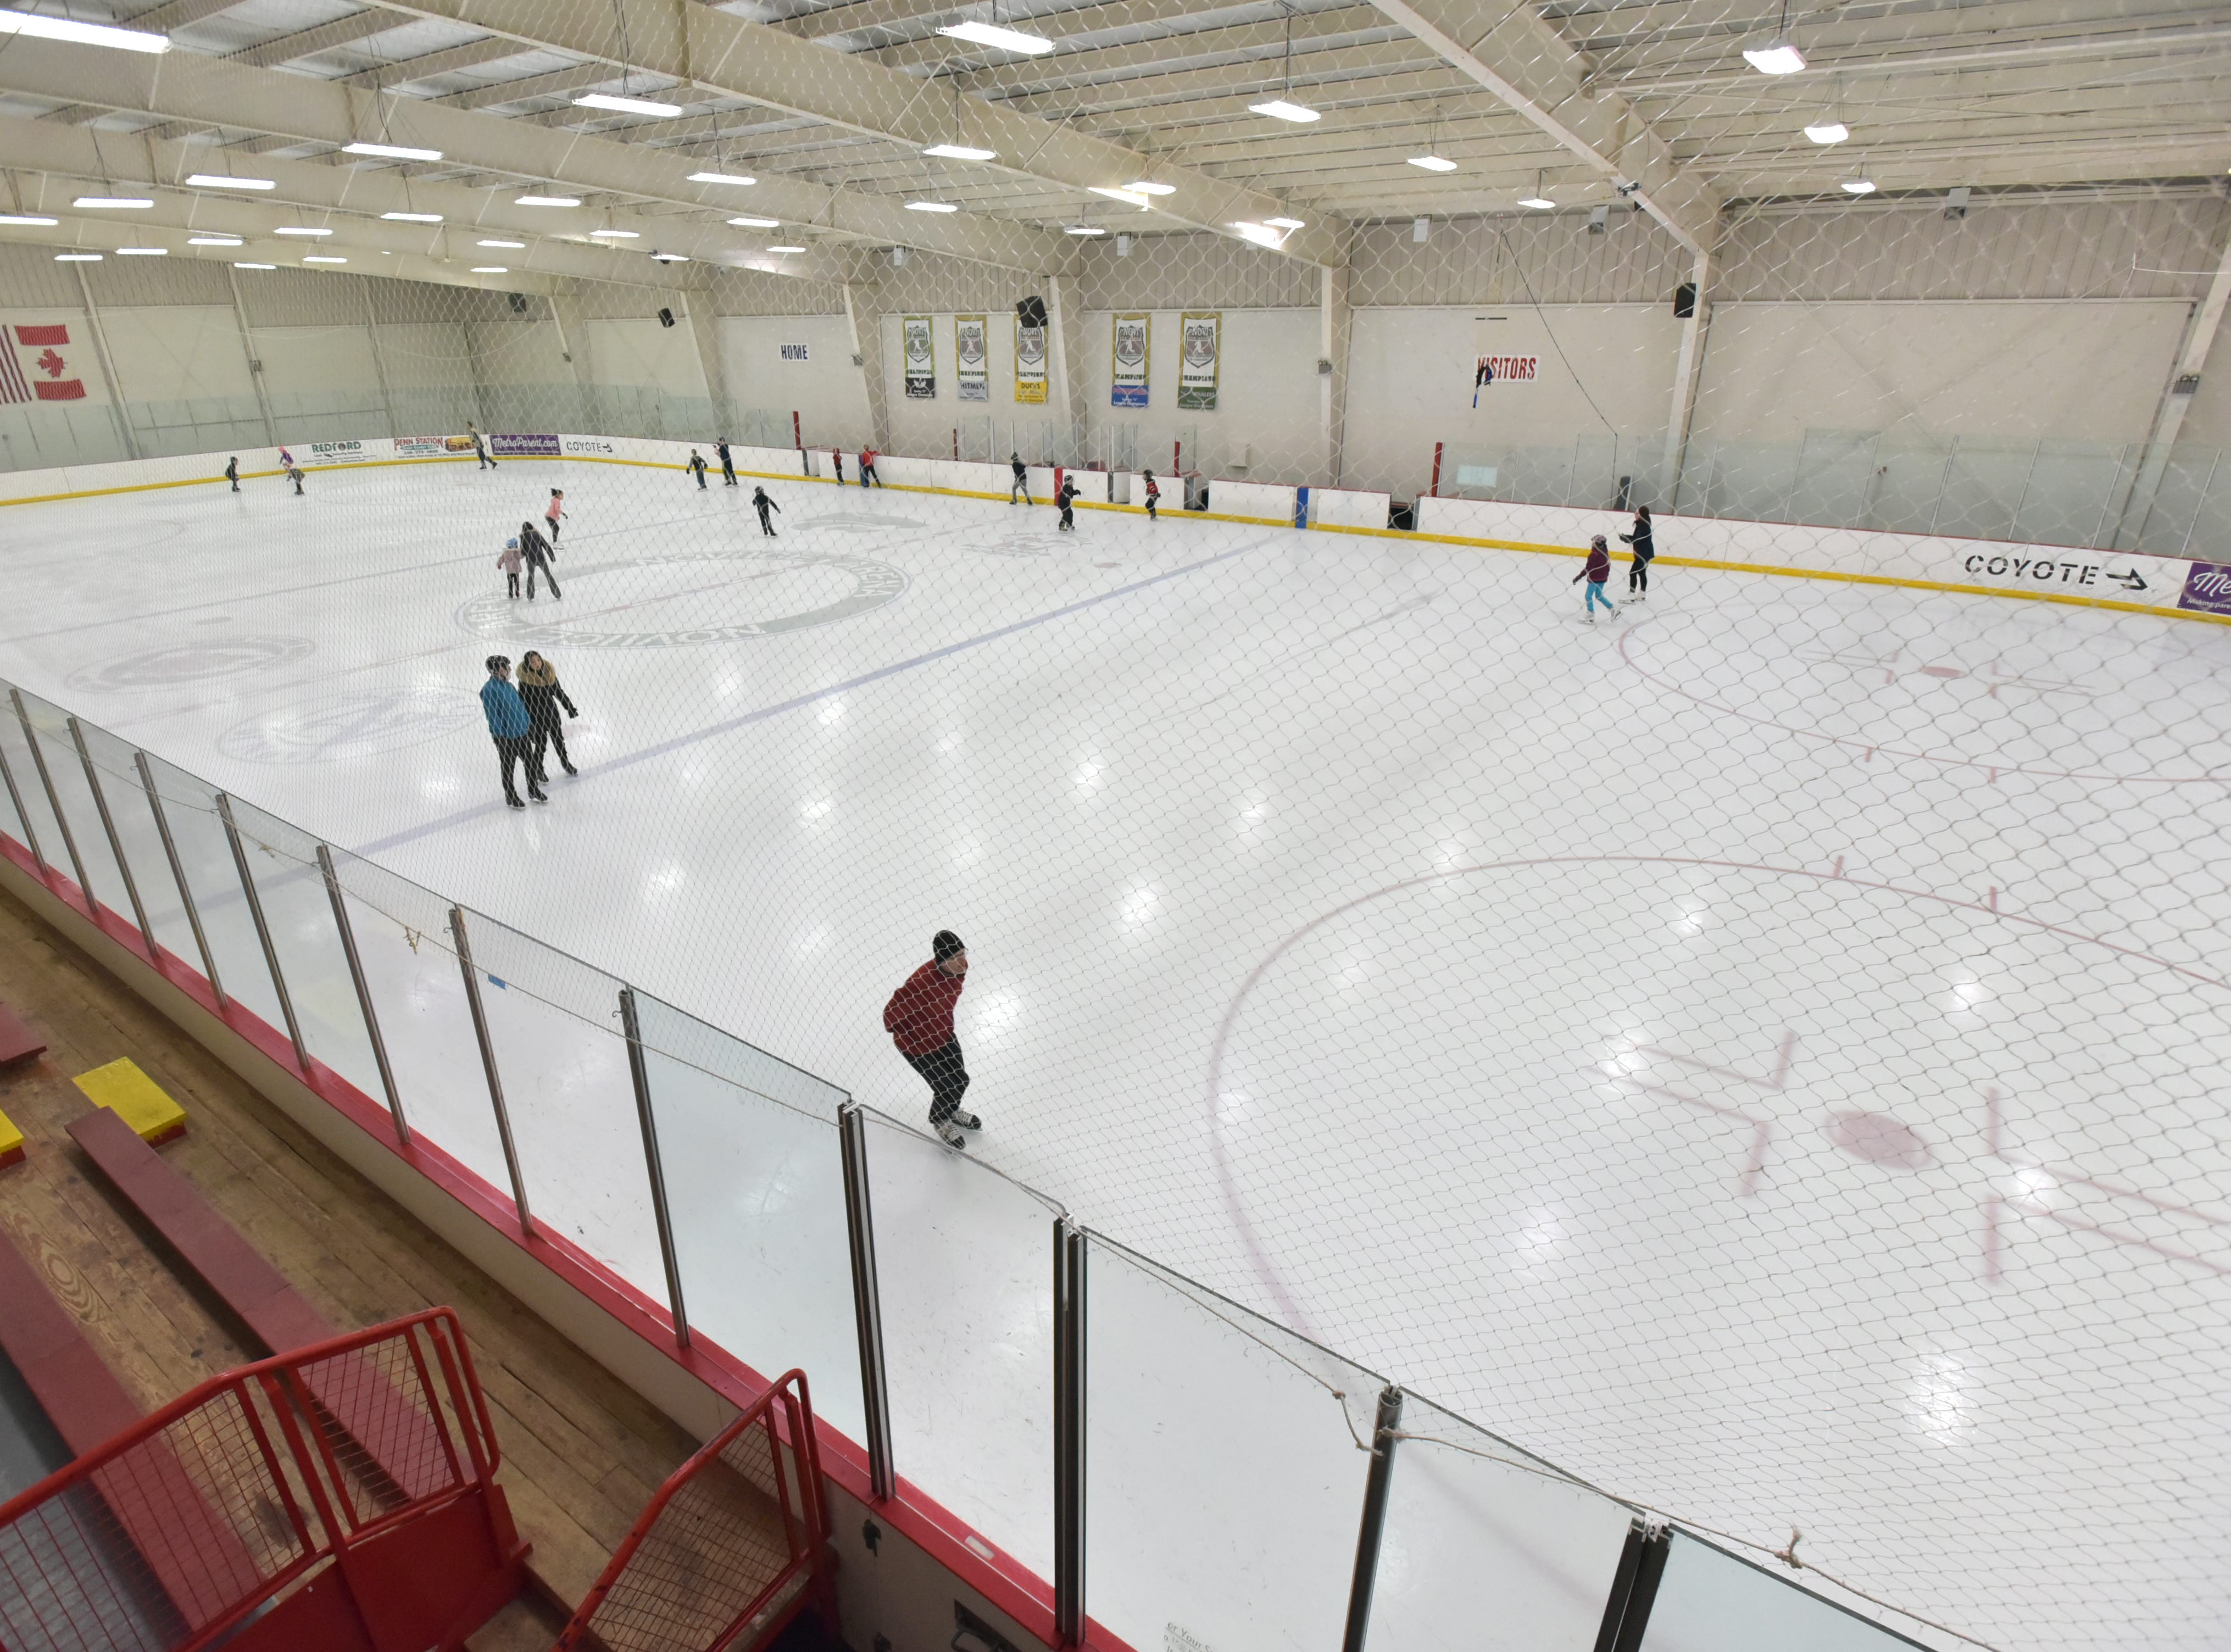 Skaters hit the ice at the Novi Ice Arena on Jan. 23 The arena has been open in Novi since 1998.